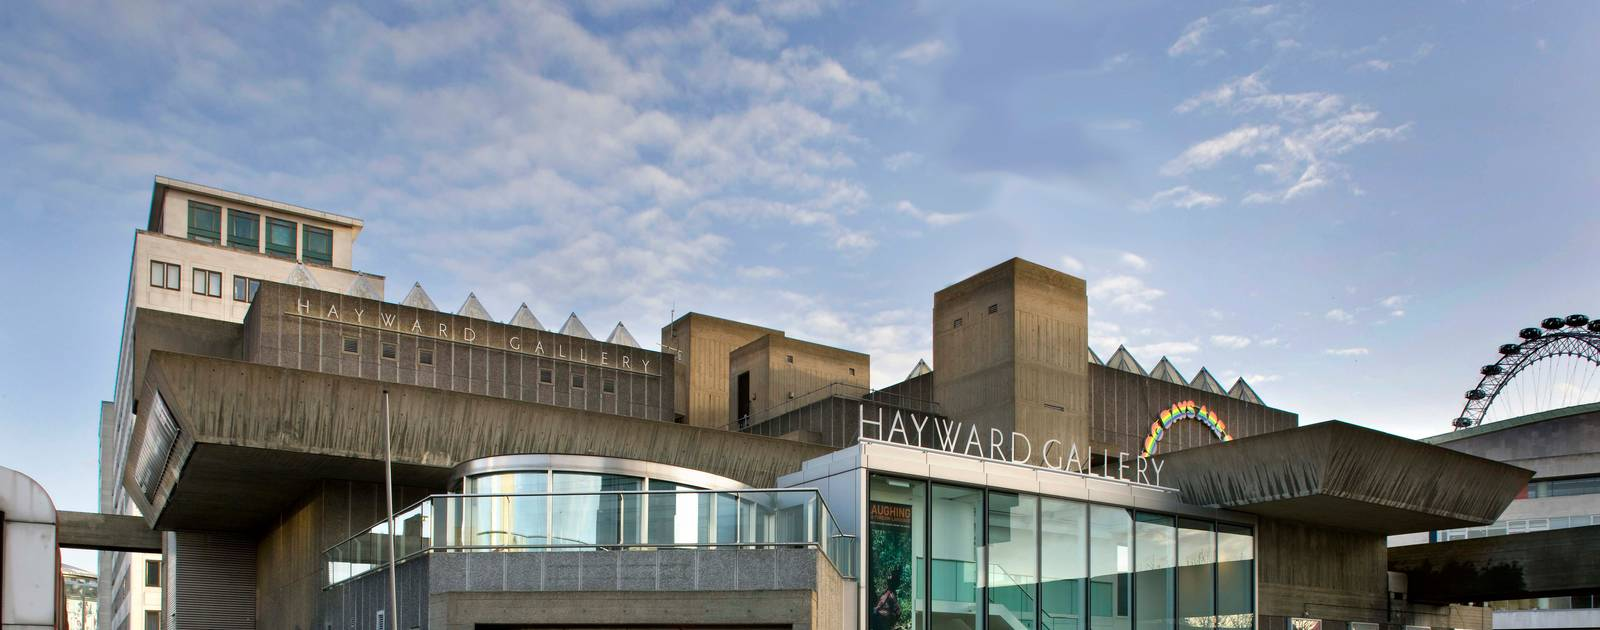 The Hayward Gallery Building at the Southbank Centre